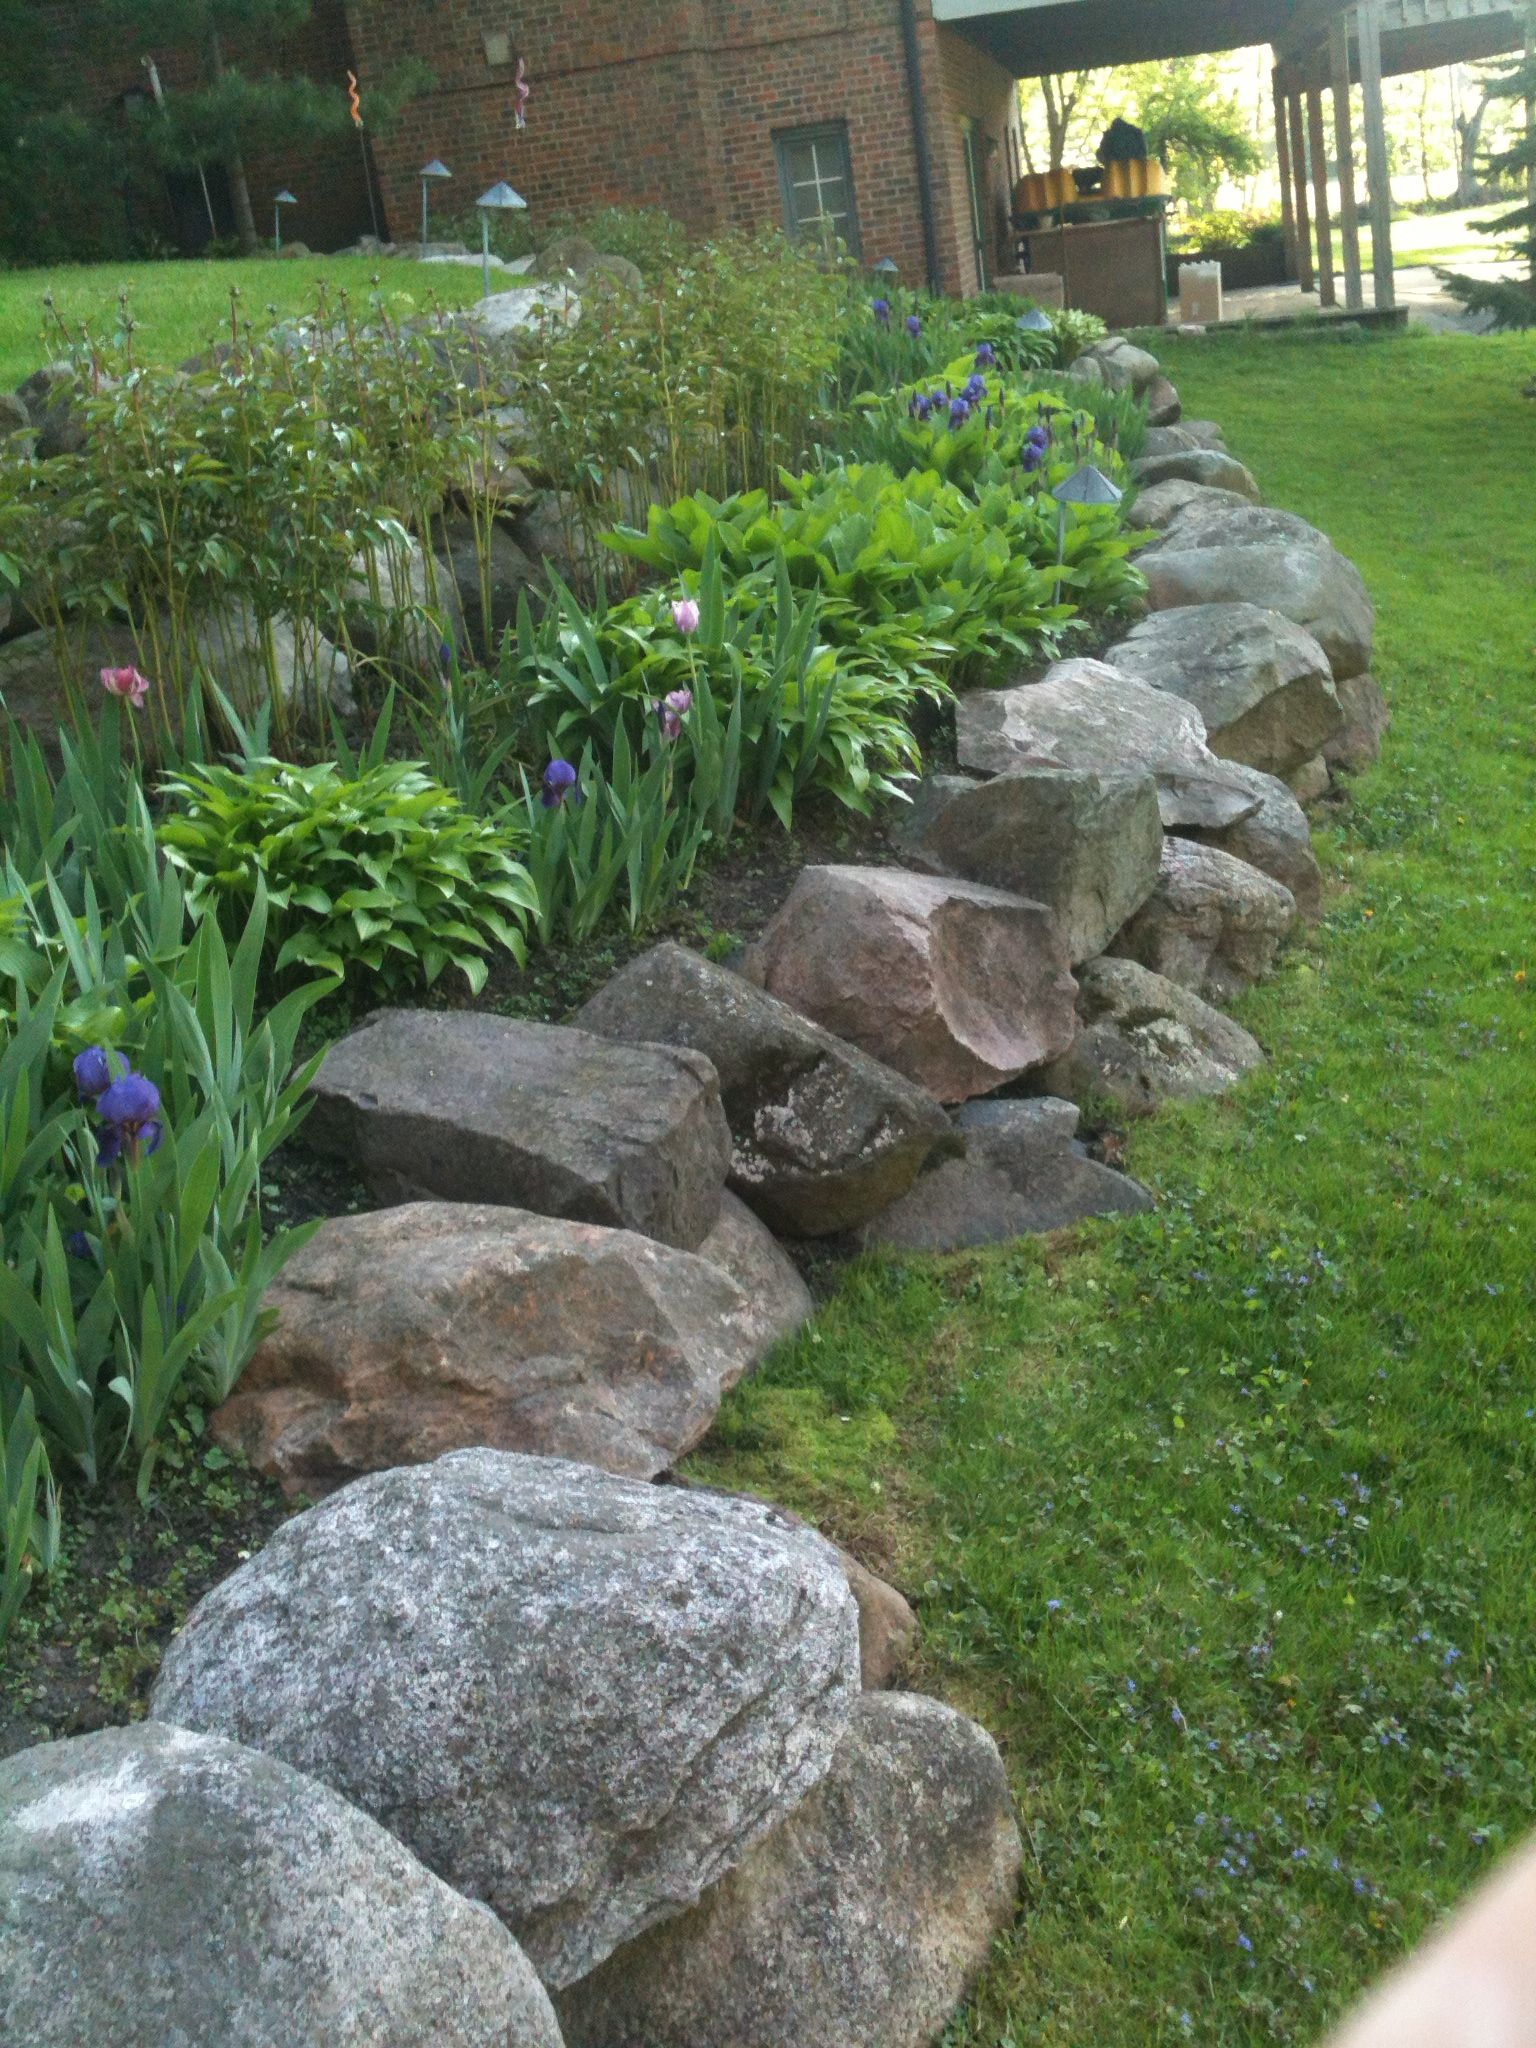 Awesome Rock Landscaping Ideas Backyard that Work (With